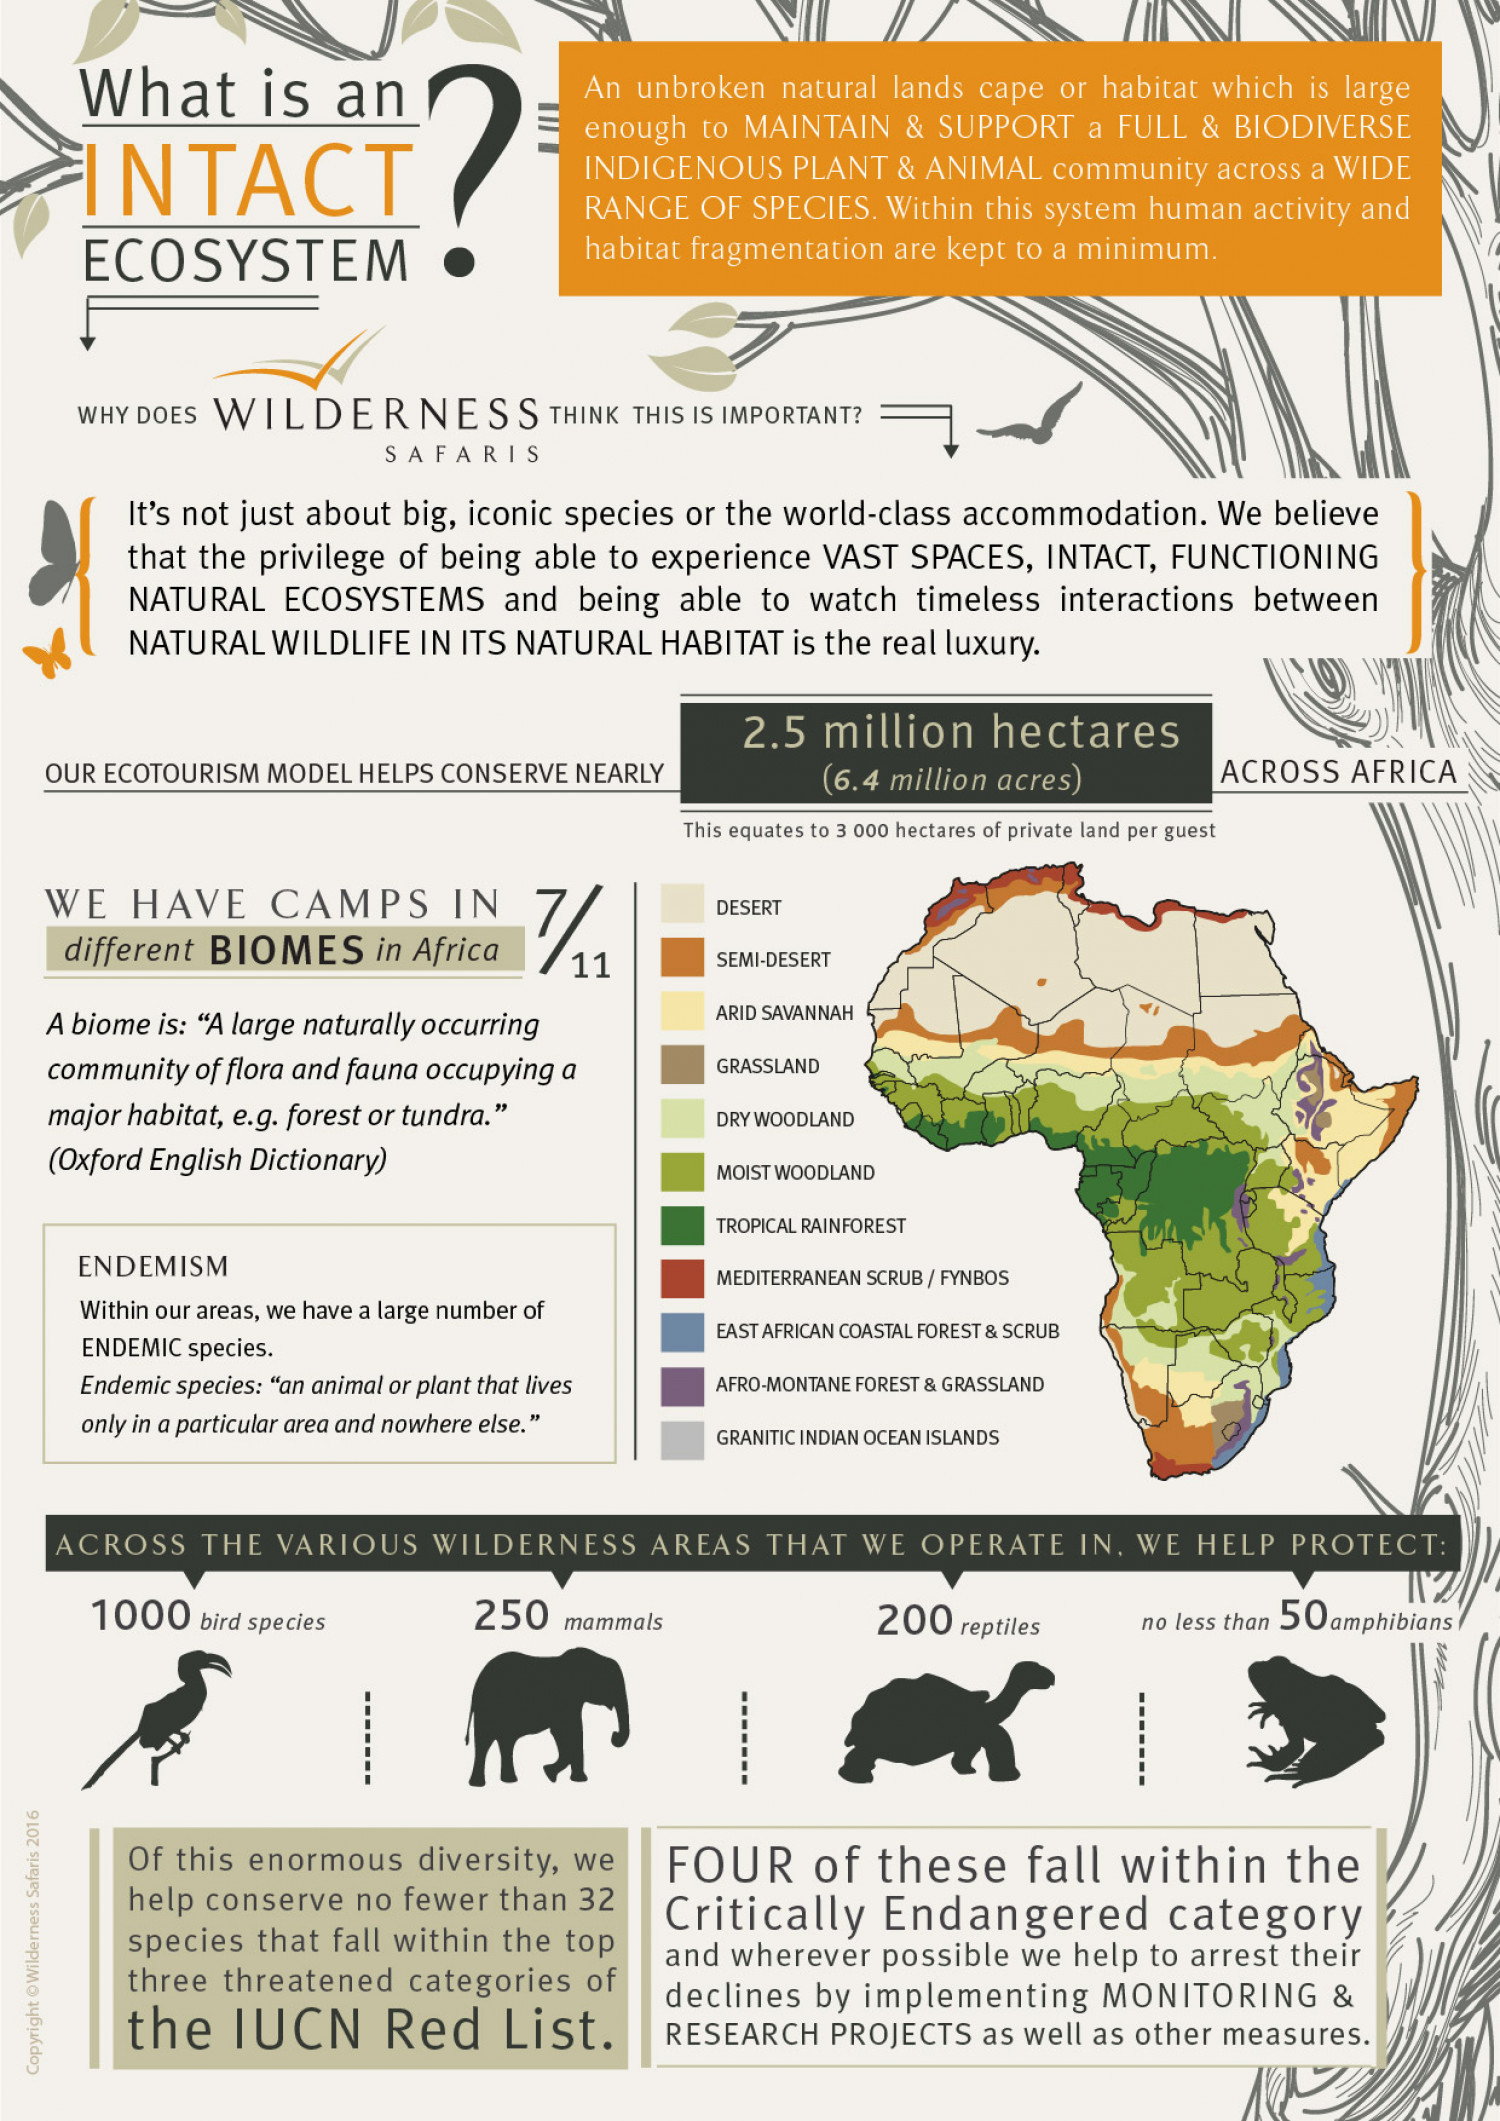 Africa's intact ecosystems Infographic